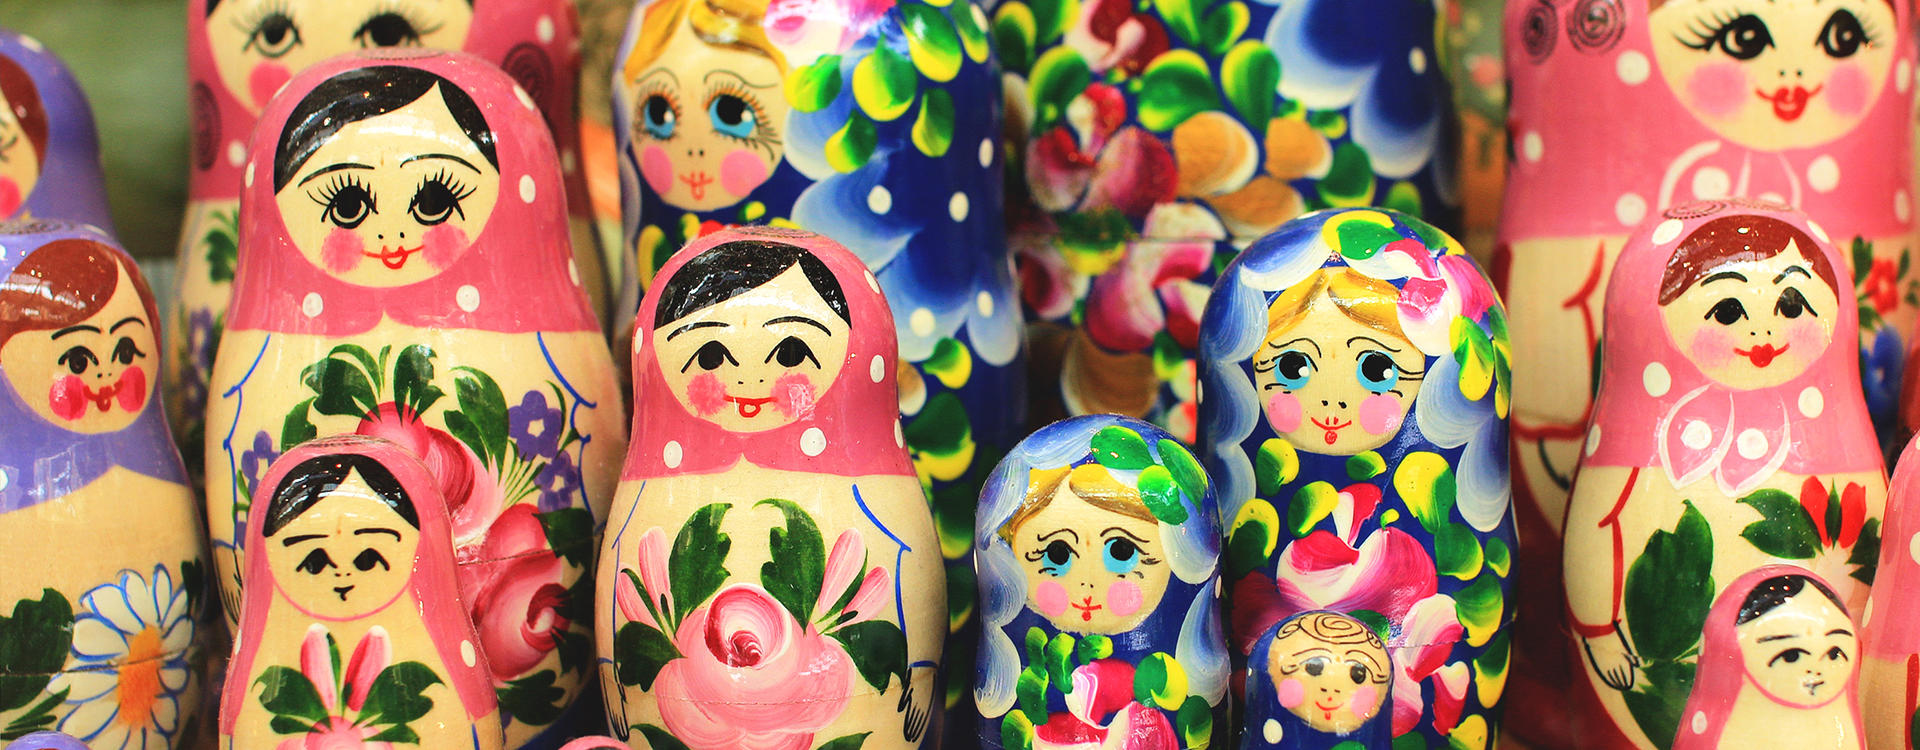 CO-St-Petersburg_Matreshka-Handwriting-Masterclass